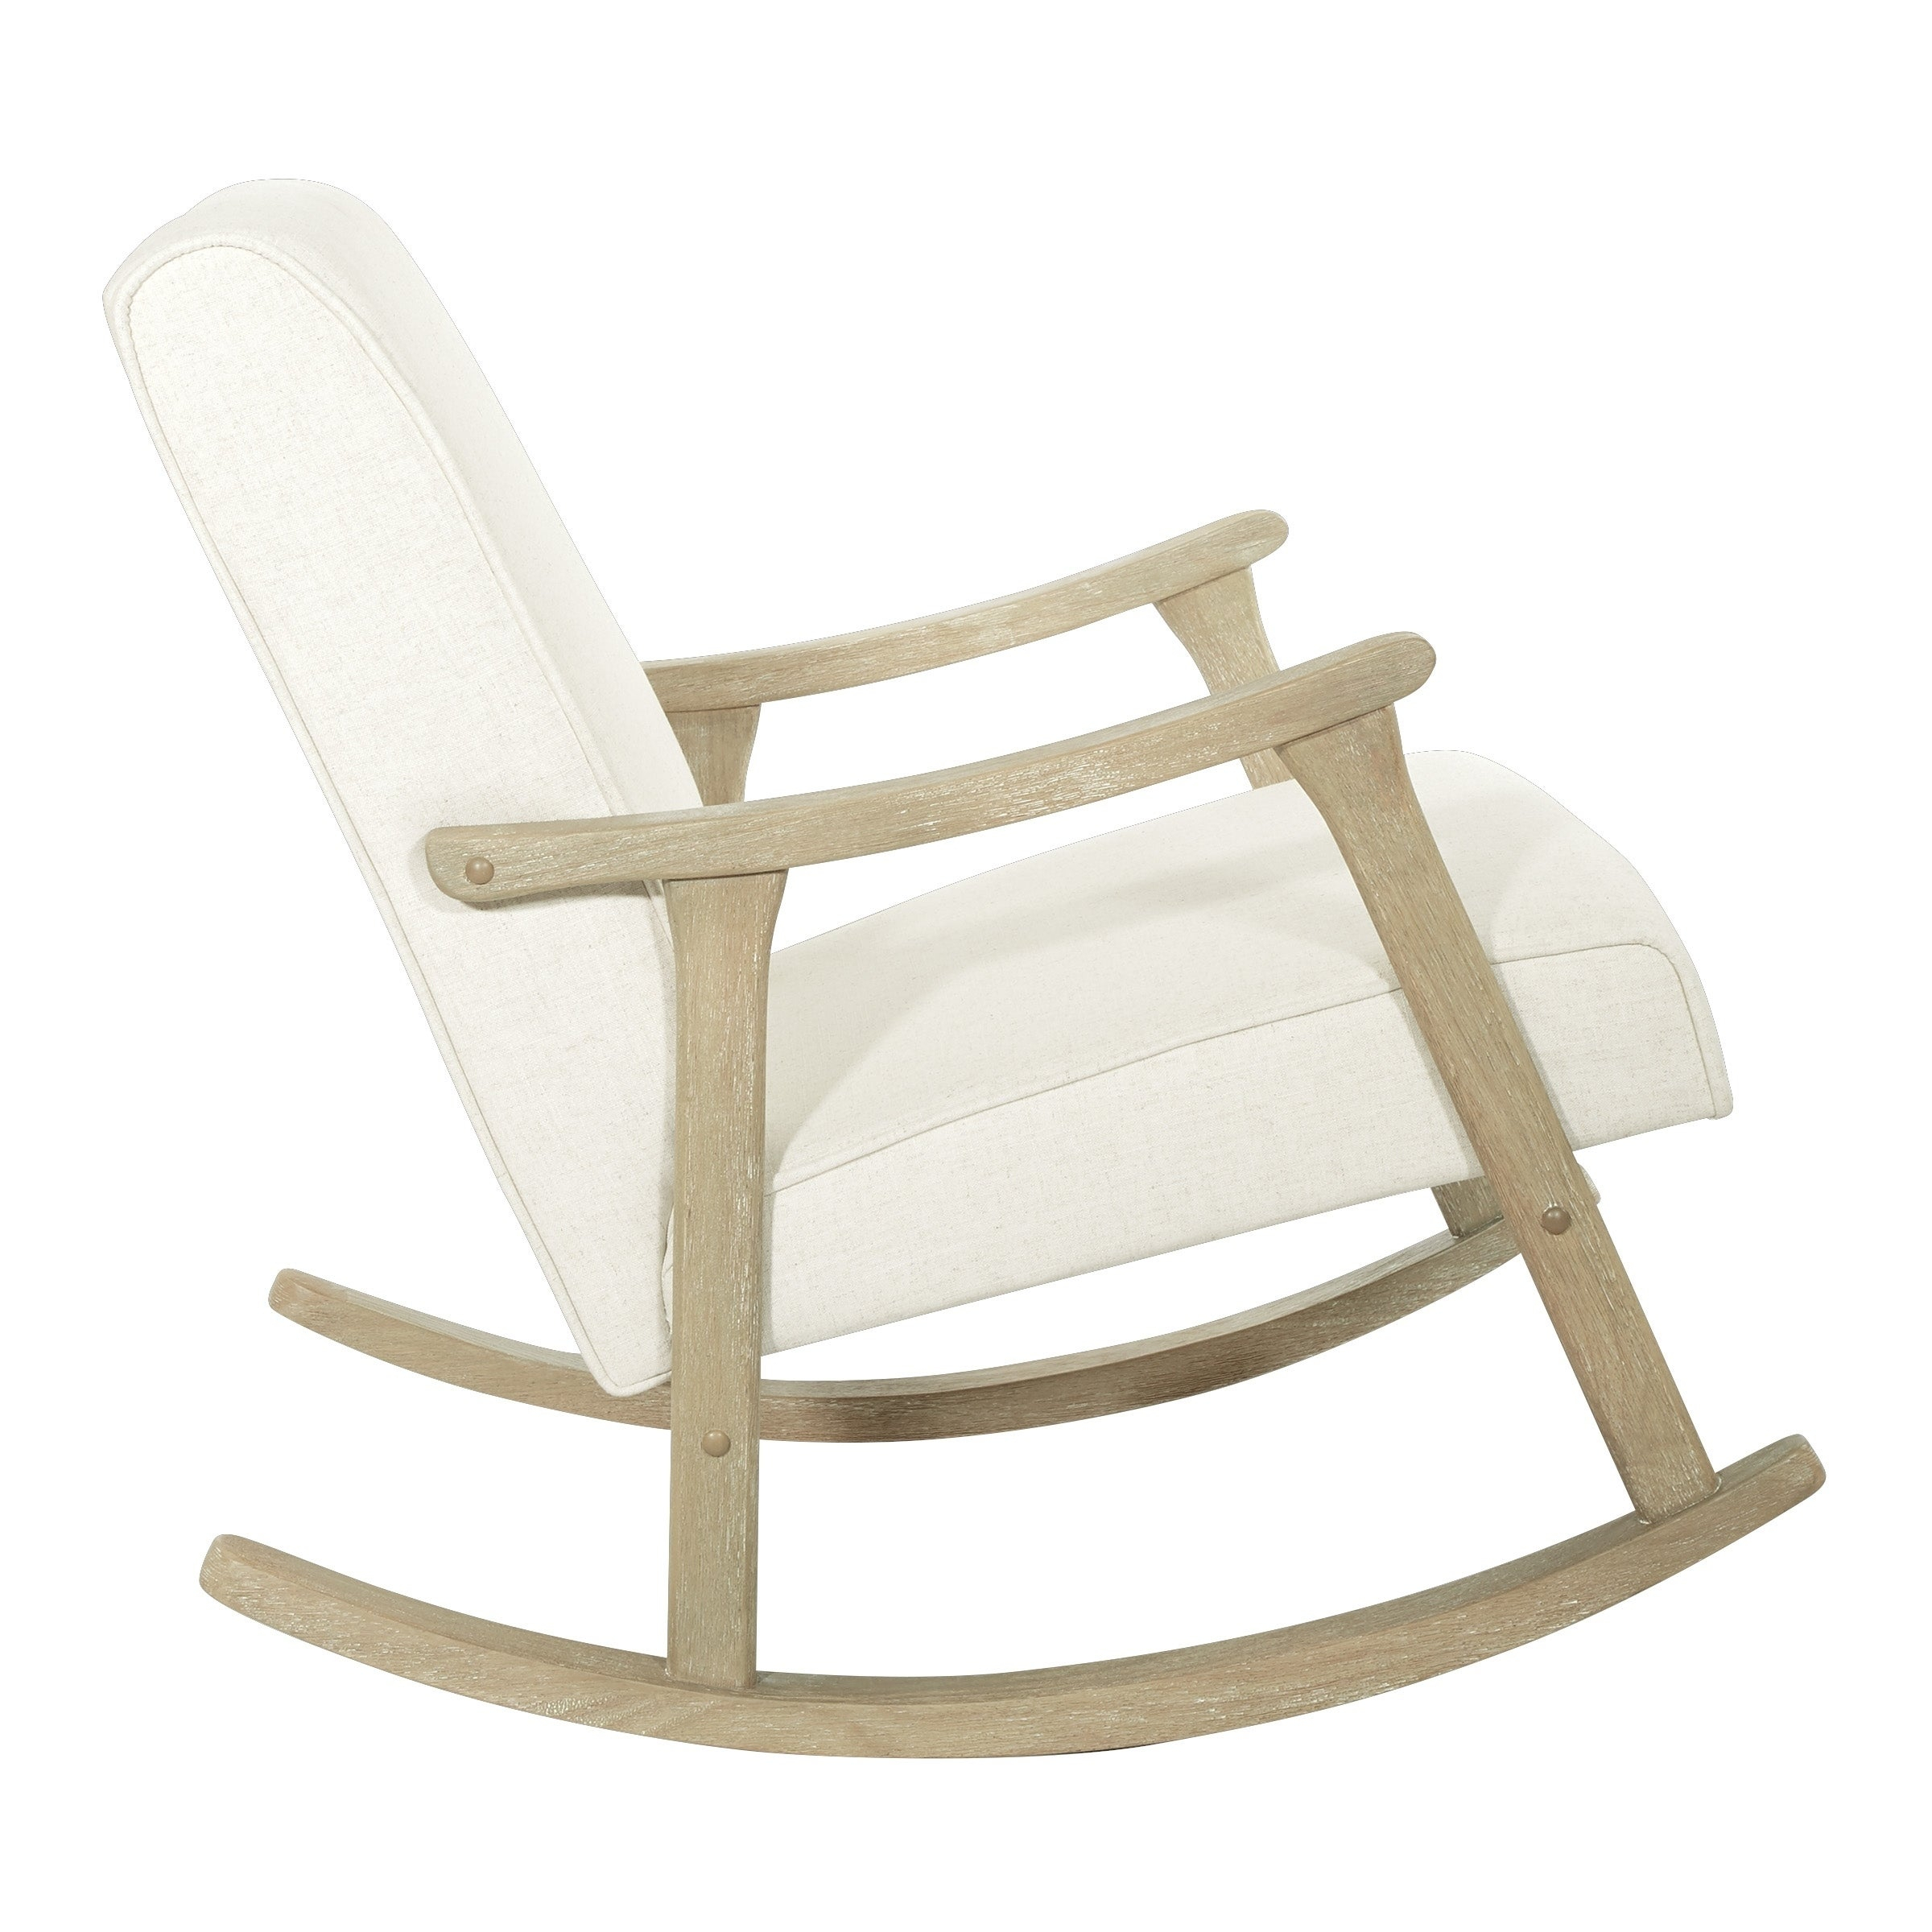 Osp Home Furnishings Gainsborough Rocker In Linen Fabric With Brushed  Finish Base Intended For Rocking Chairs In Linen Fabric With Brushed Finish Base (#11 of 20)